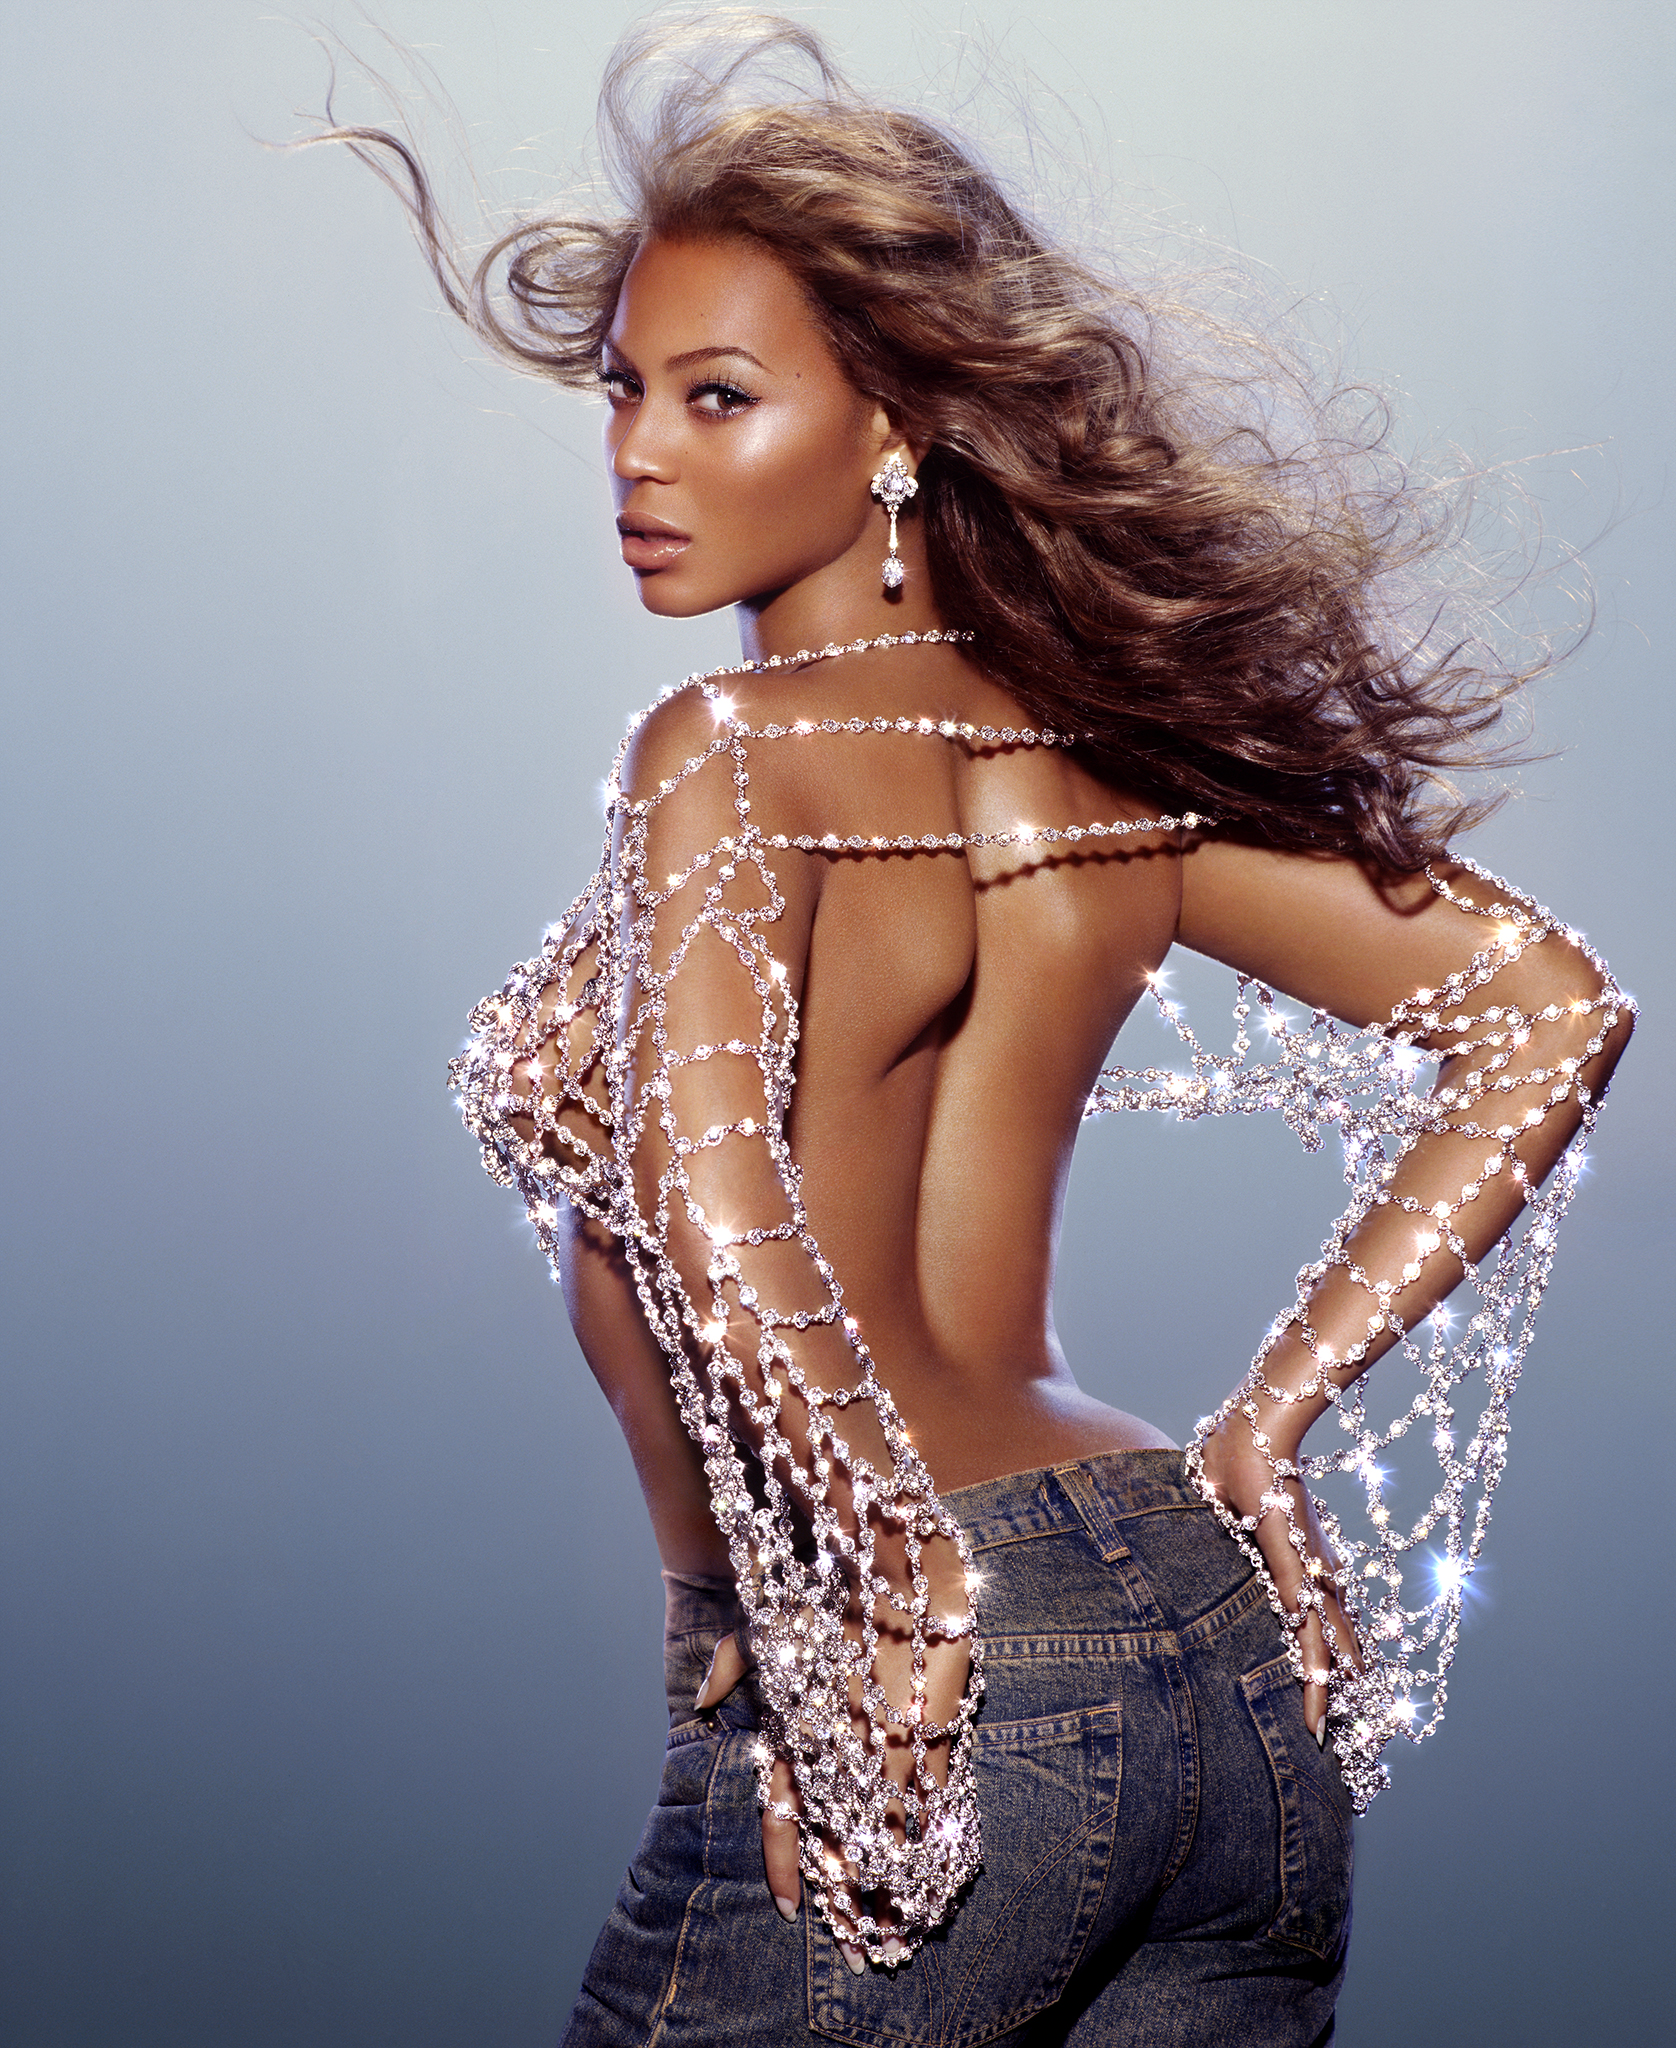 jewel15BEYONCE_NEW_BOOK-1sfl.jpg